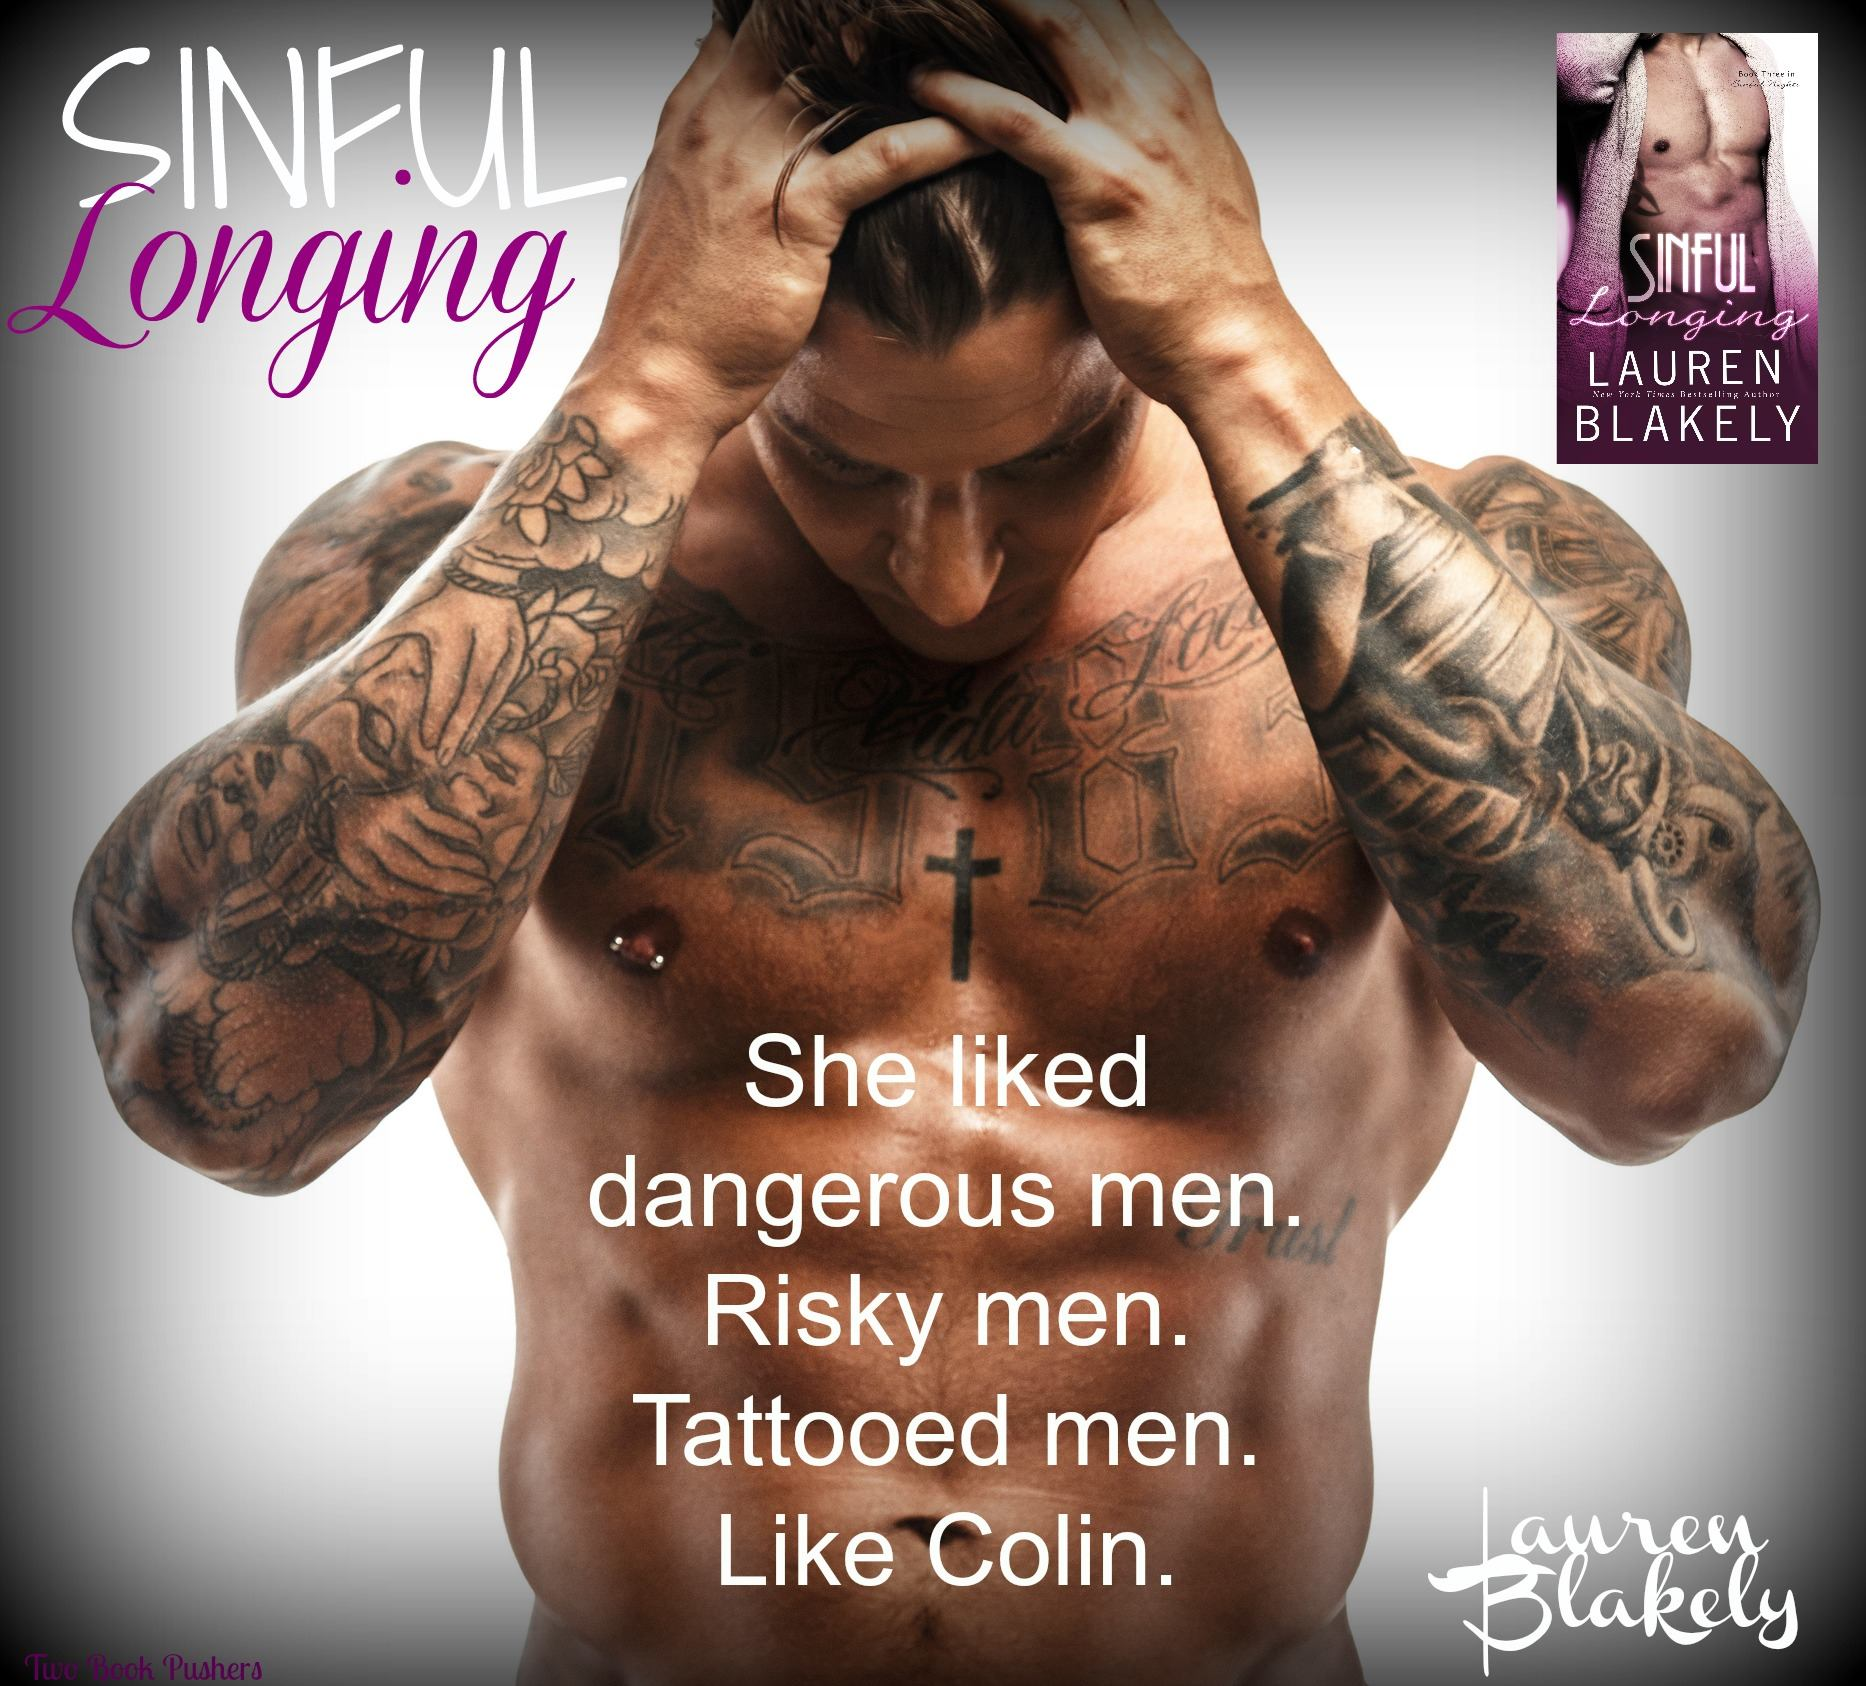 Sinful Longing by Laura Blakely